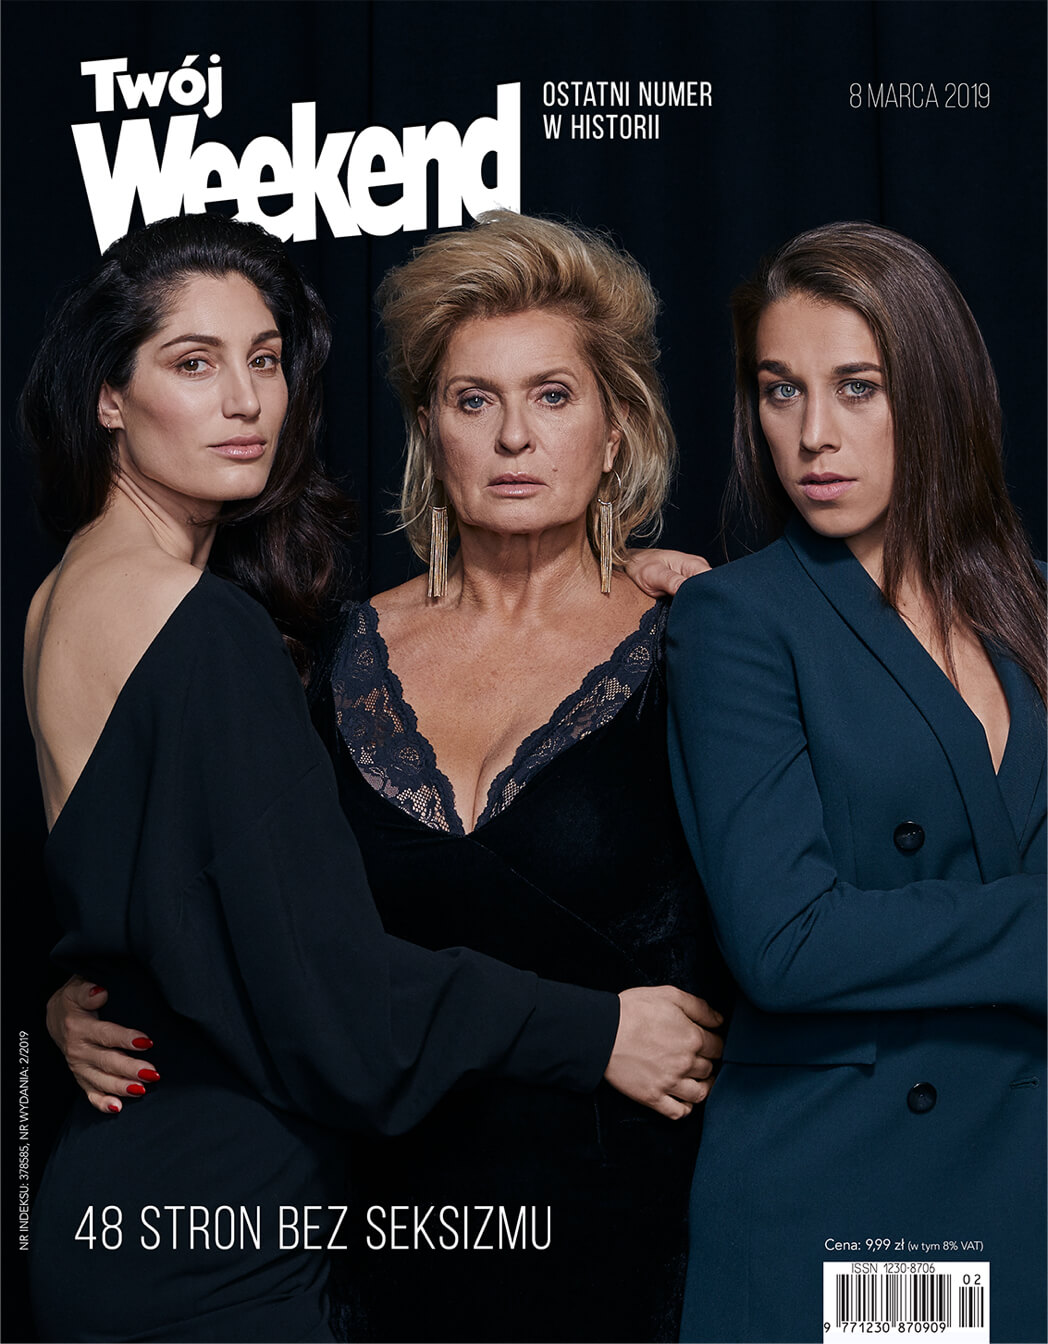 The Women's Issue, cover